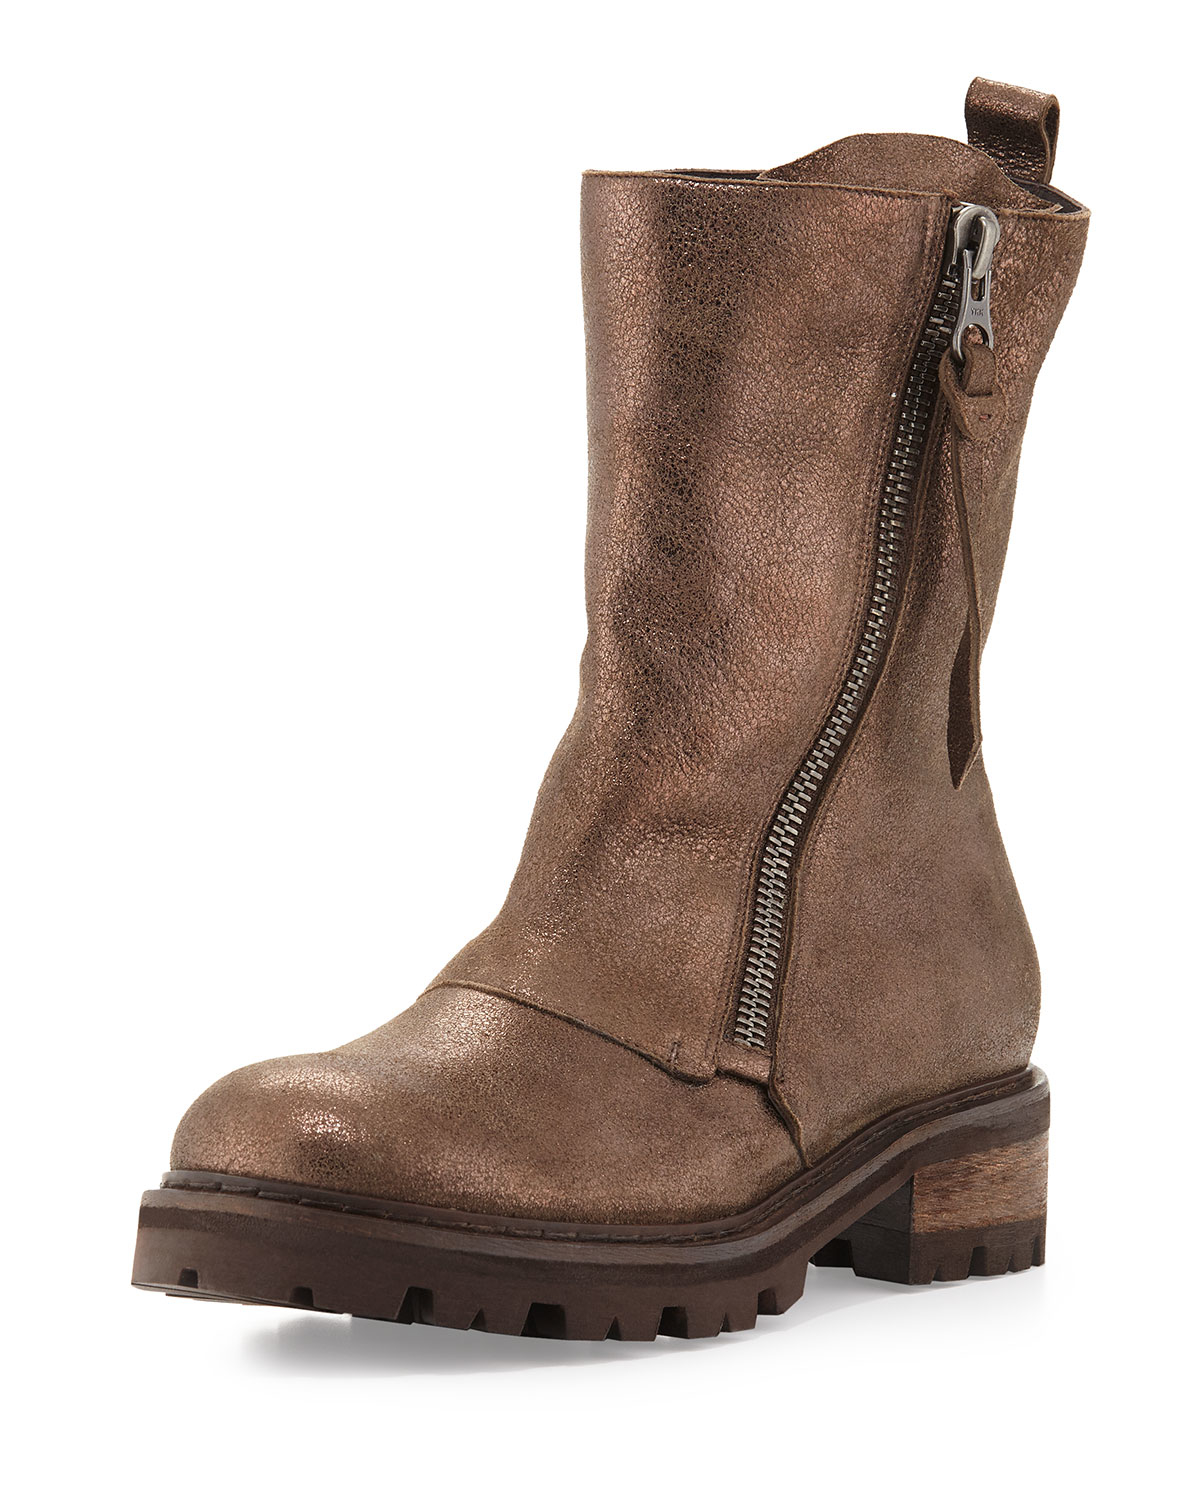 Henry Beguelin Metallic Dusted Leather Moto Boot In Brown